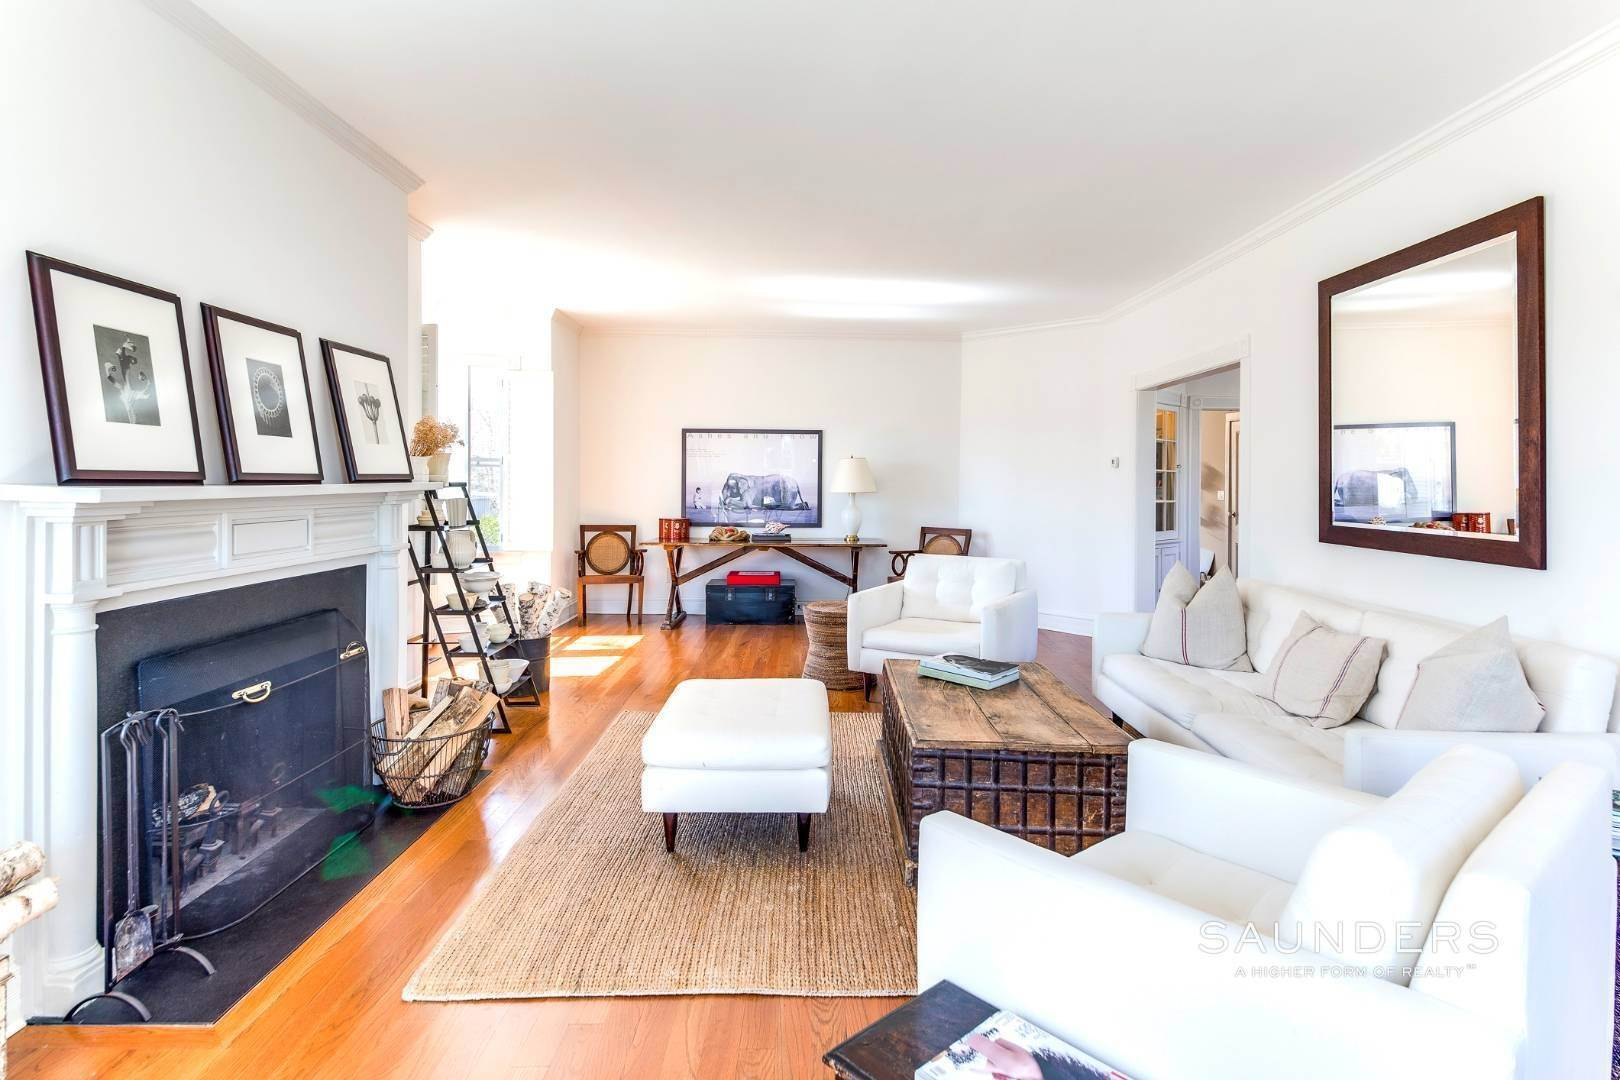 3. Single Family Homes for Sale at Historic Sag Harbor Charm On Rare Half Acre 27 Columbia Street, Sag Harbor, Southampton Town, NY 11963